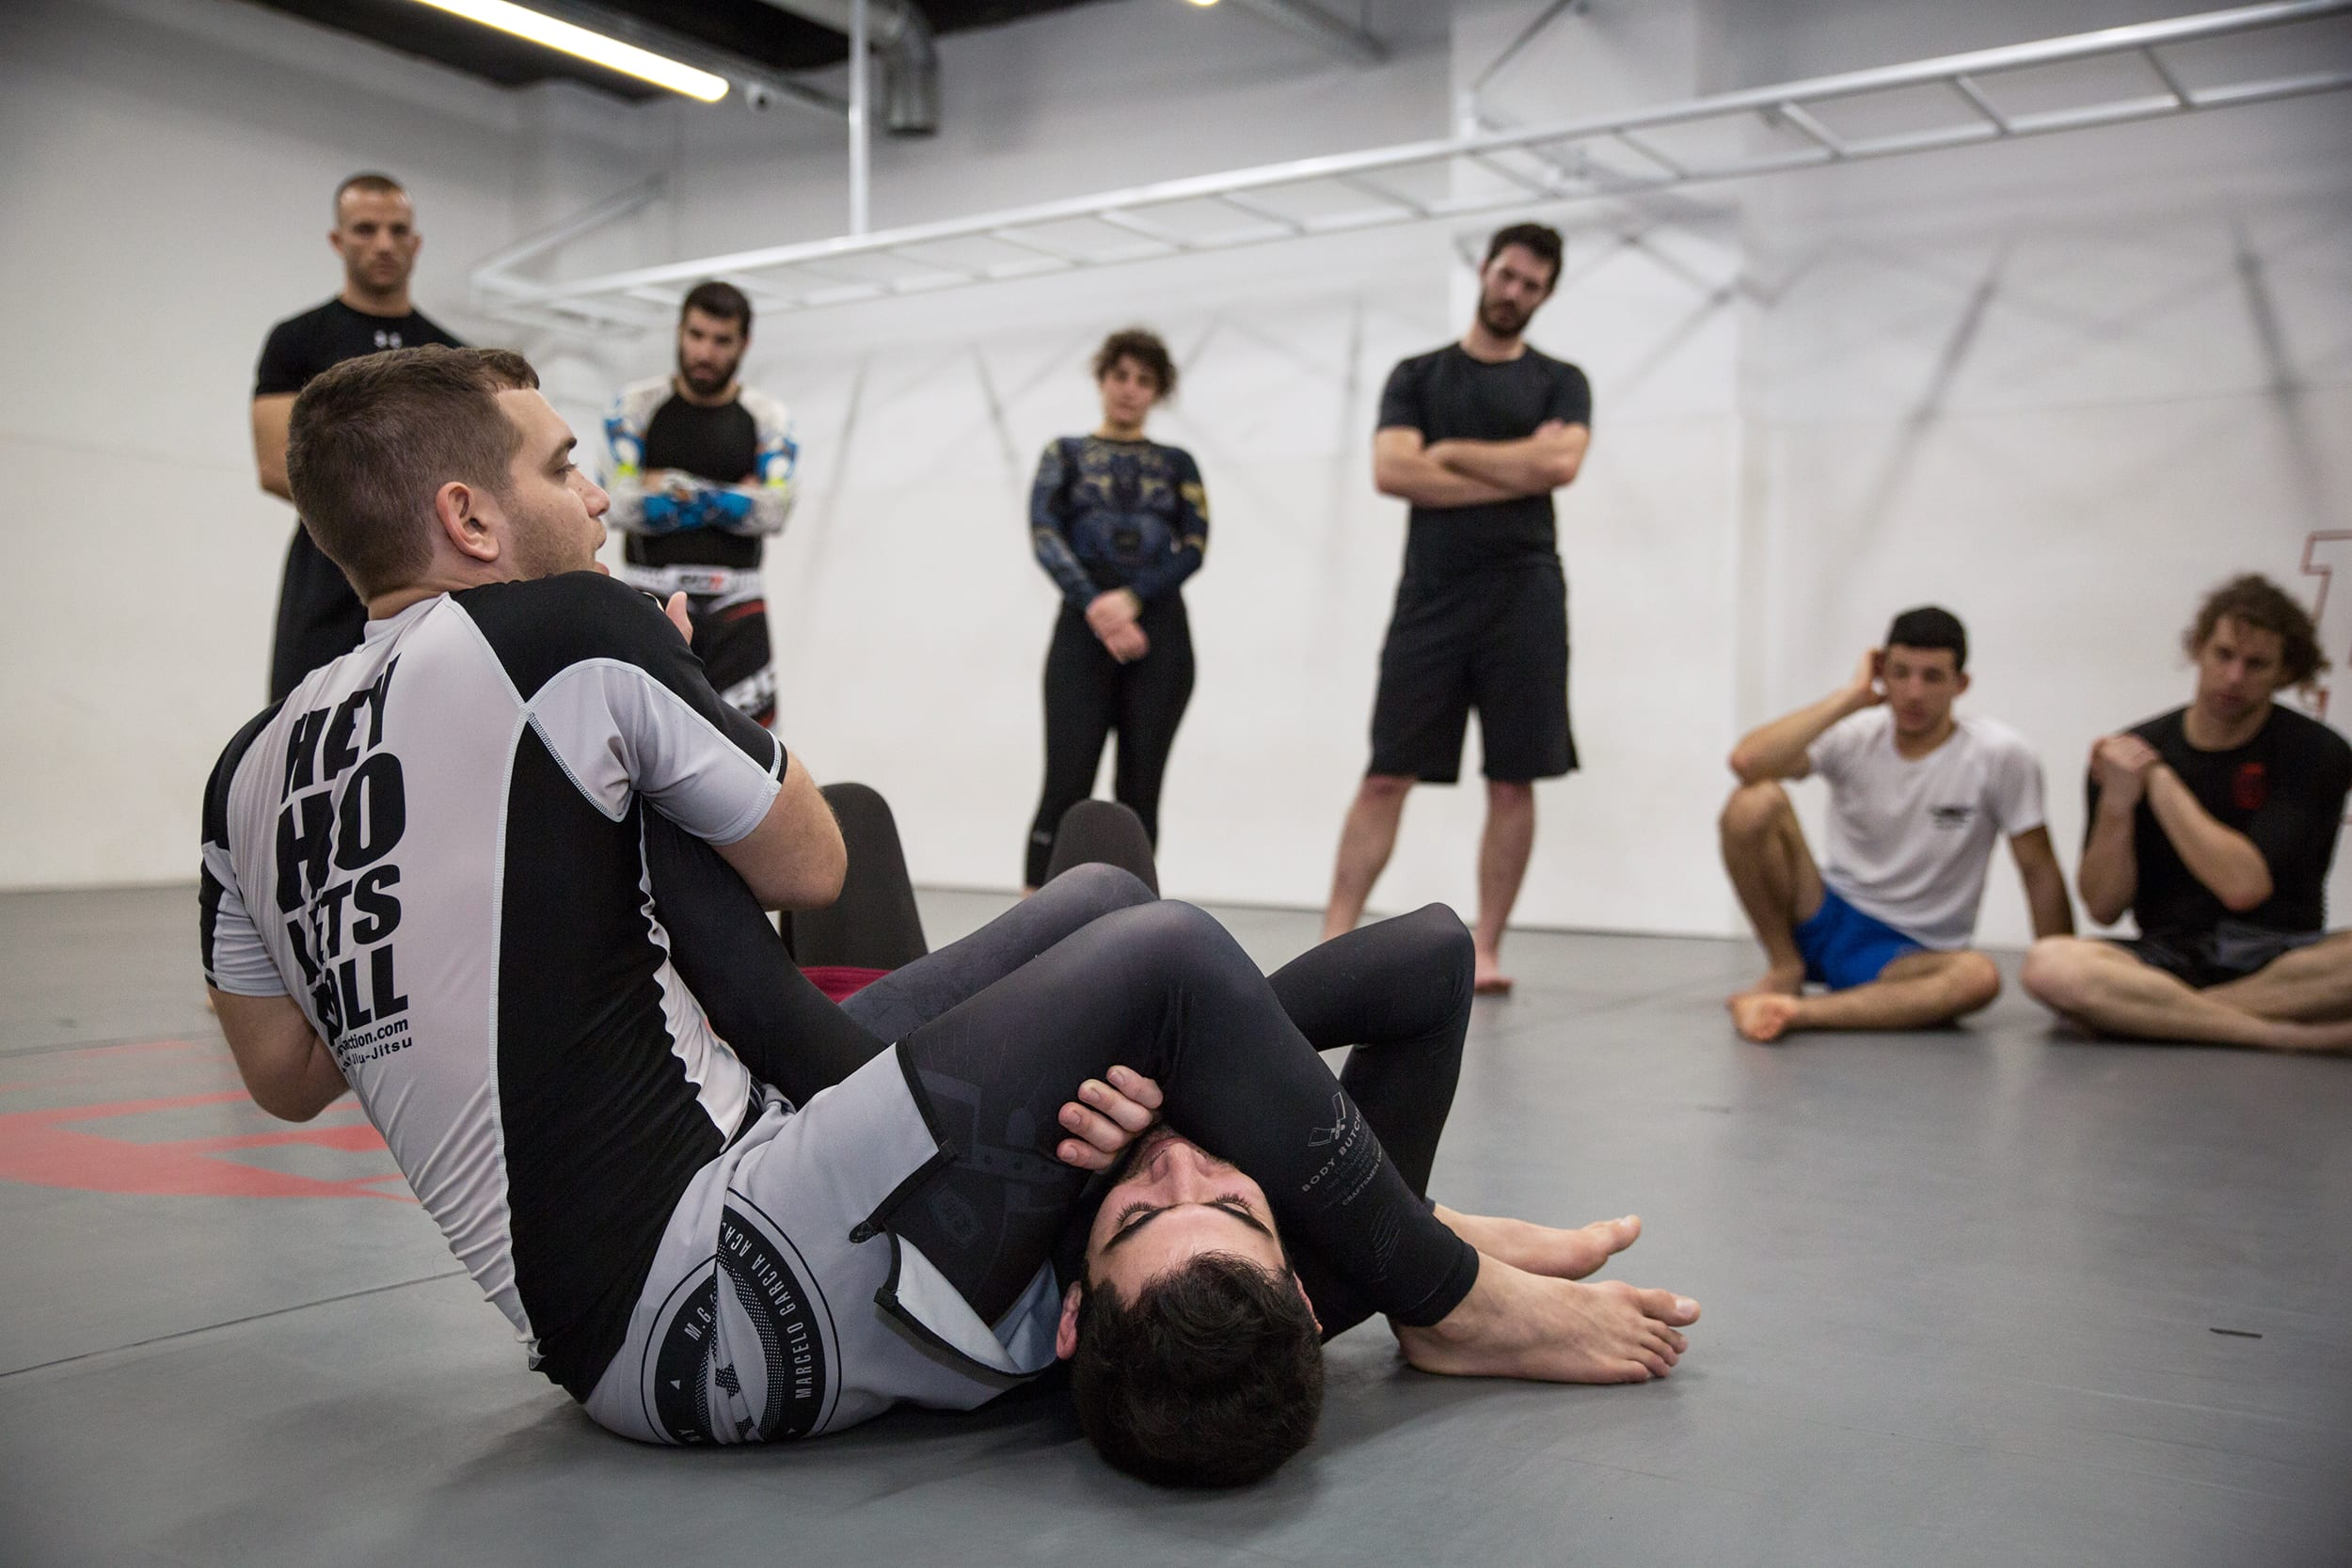 Asaf Mich performing an armbar